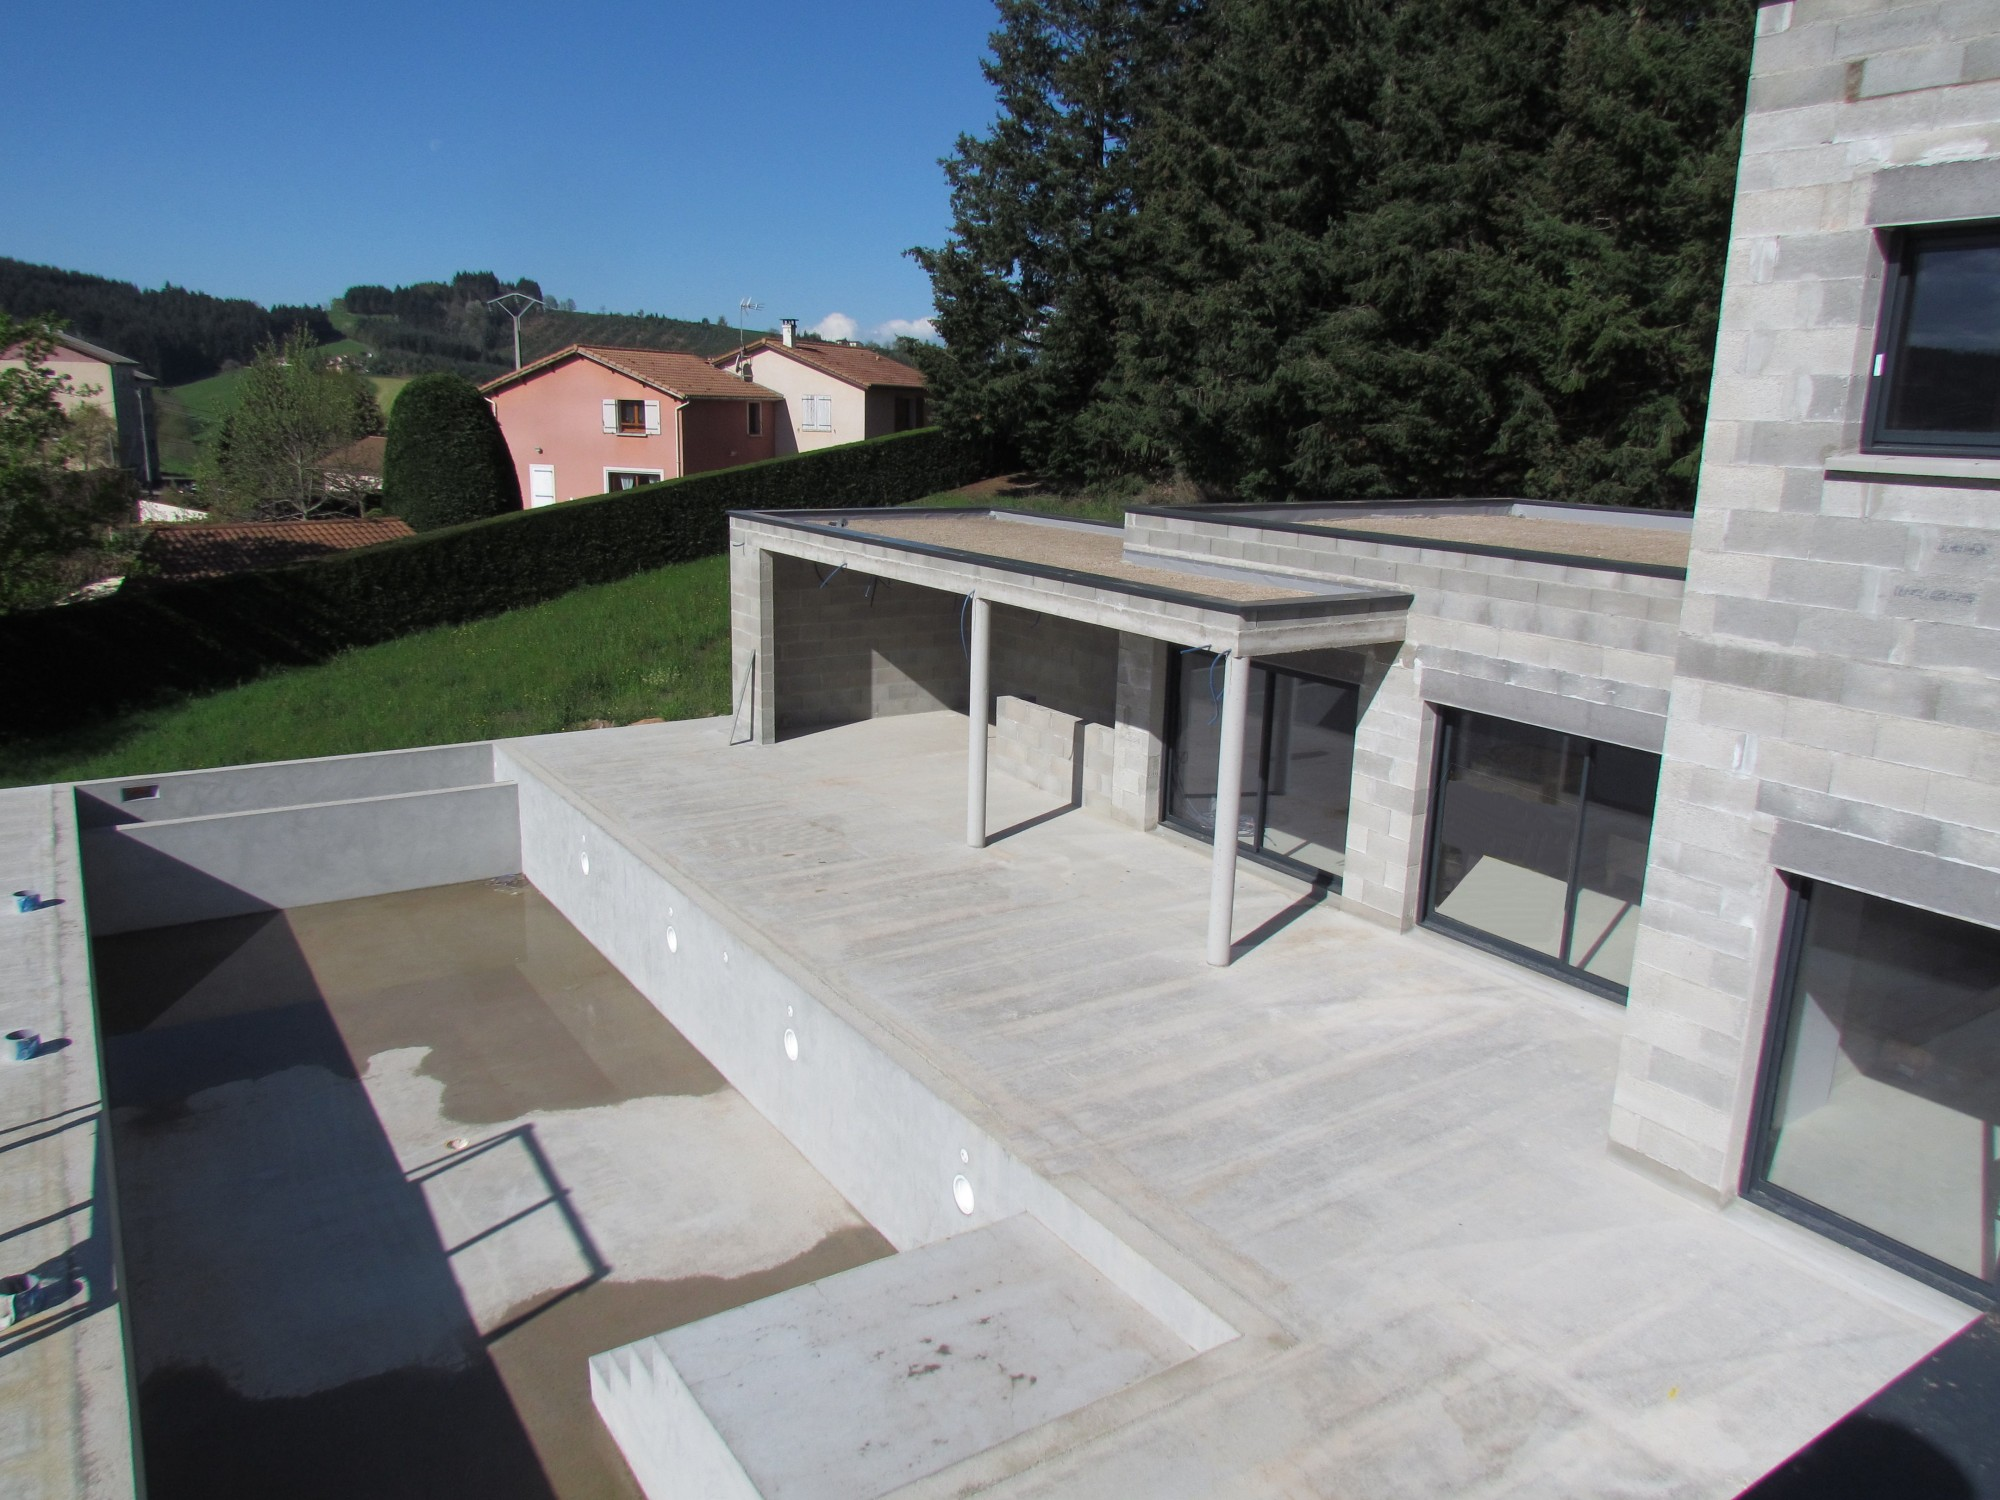 Toit plat v g talis pour cette belle maison contemporaine for Local piscine toit plat